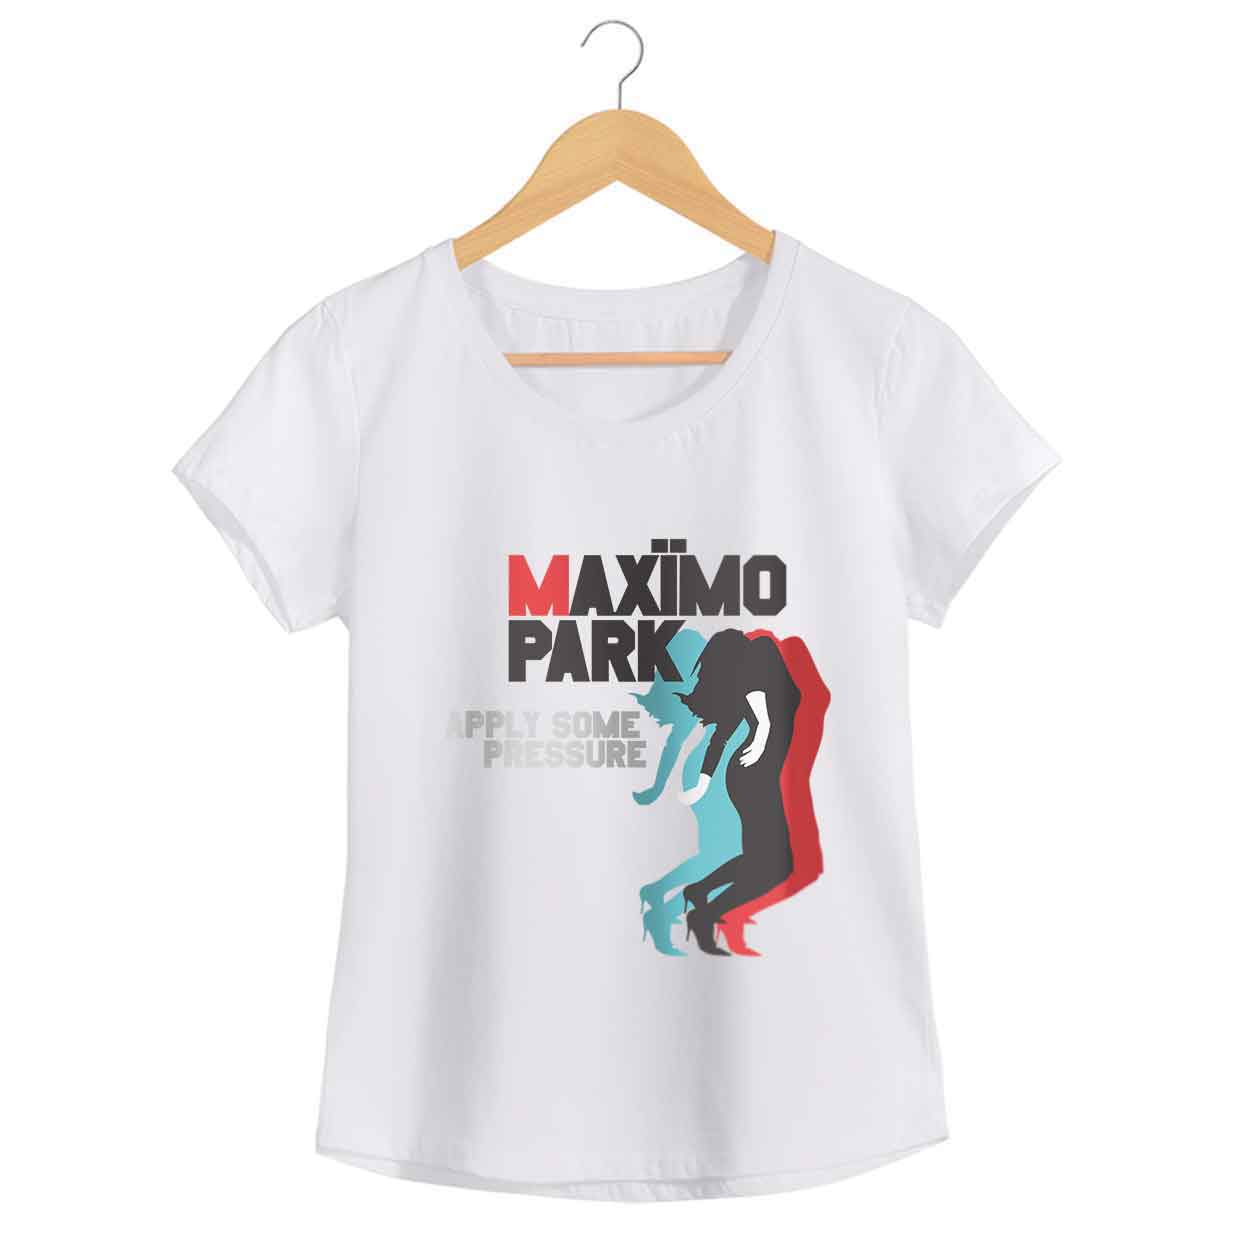 Camiseta Apply Some Pressure - Maximo Park - Feminino